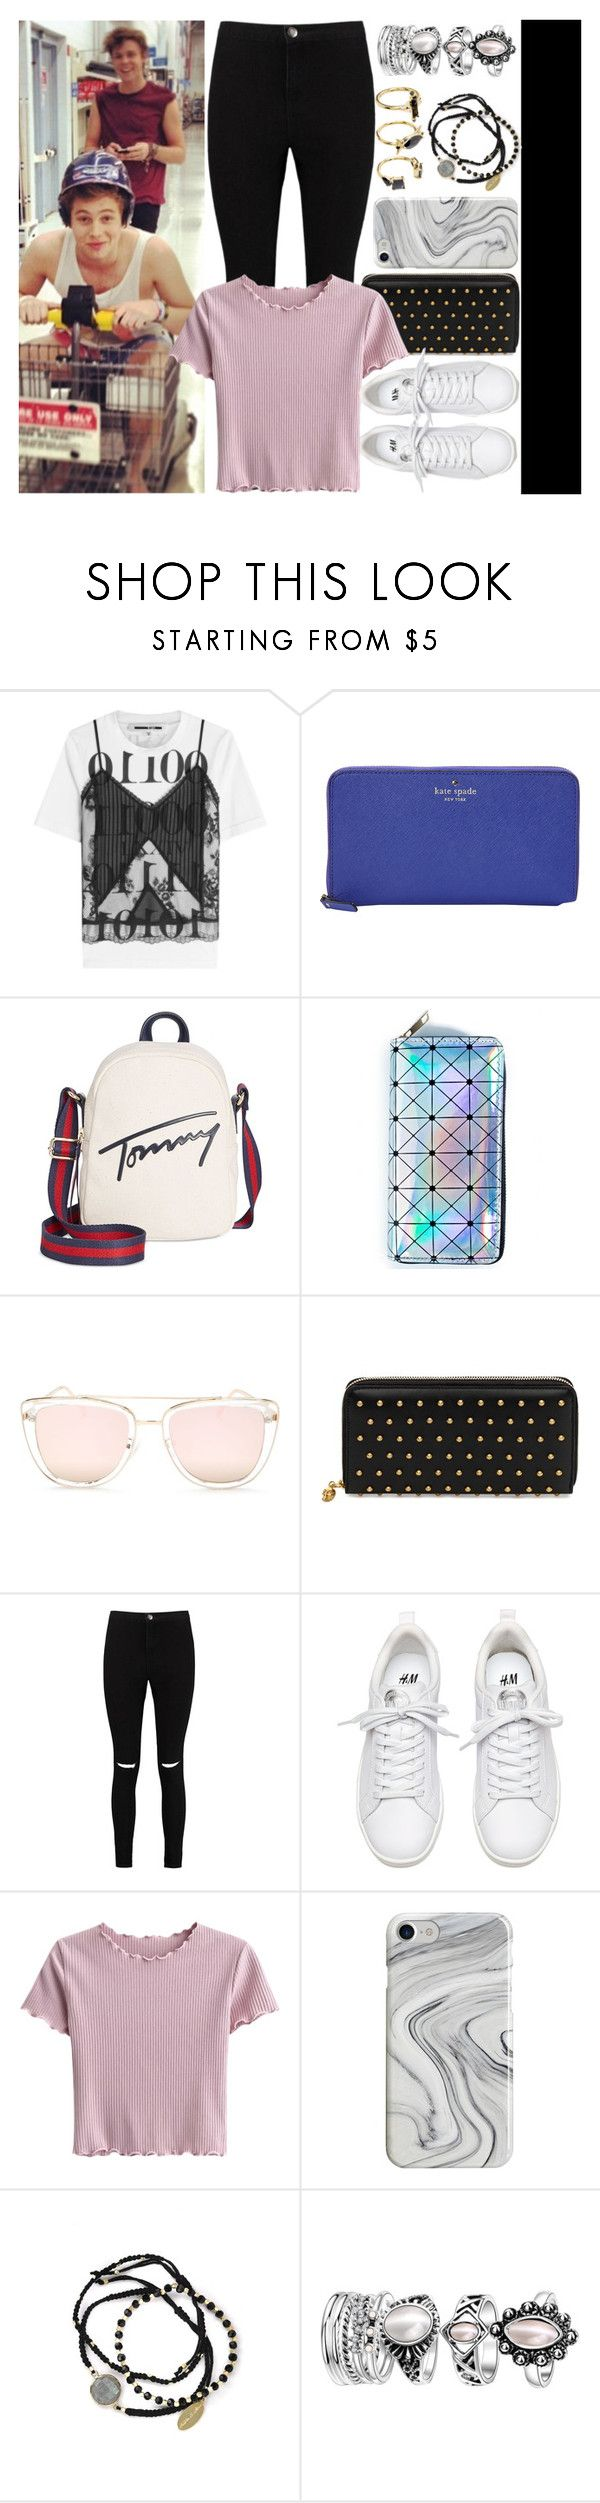 """""""With Luke Hemmings And Ashton Irwin"""" by angelbrubisc ❤ liked on Polyvore featuring McQ by Alexander McQueen, Kate Spade, Tommy Hilfiger, Quay, Alexander McQueen, Boohoo, Recover, Feather & Stone and Noir Jewelry"""